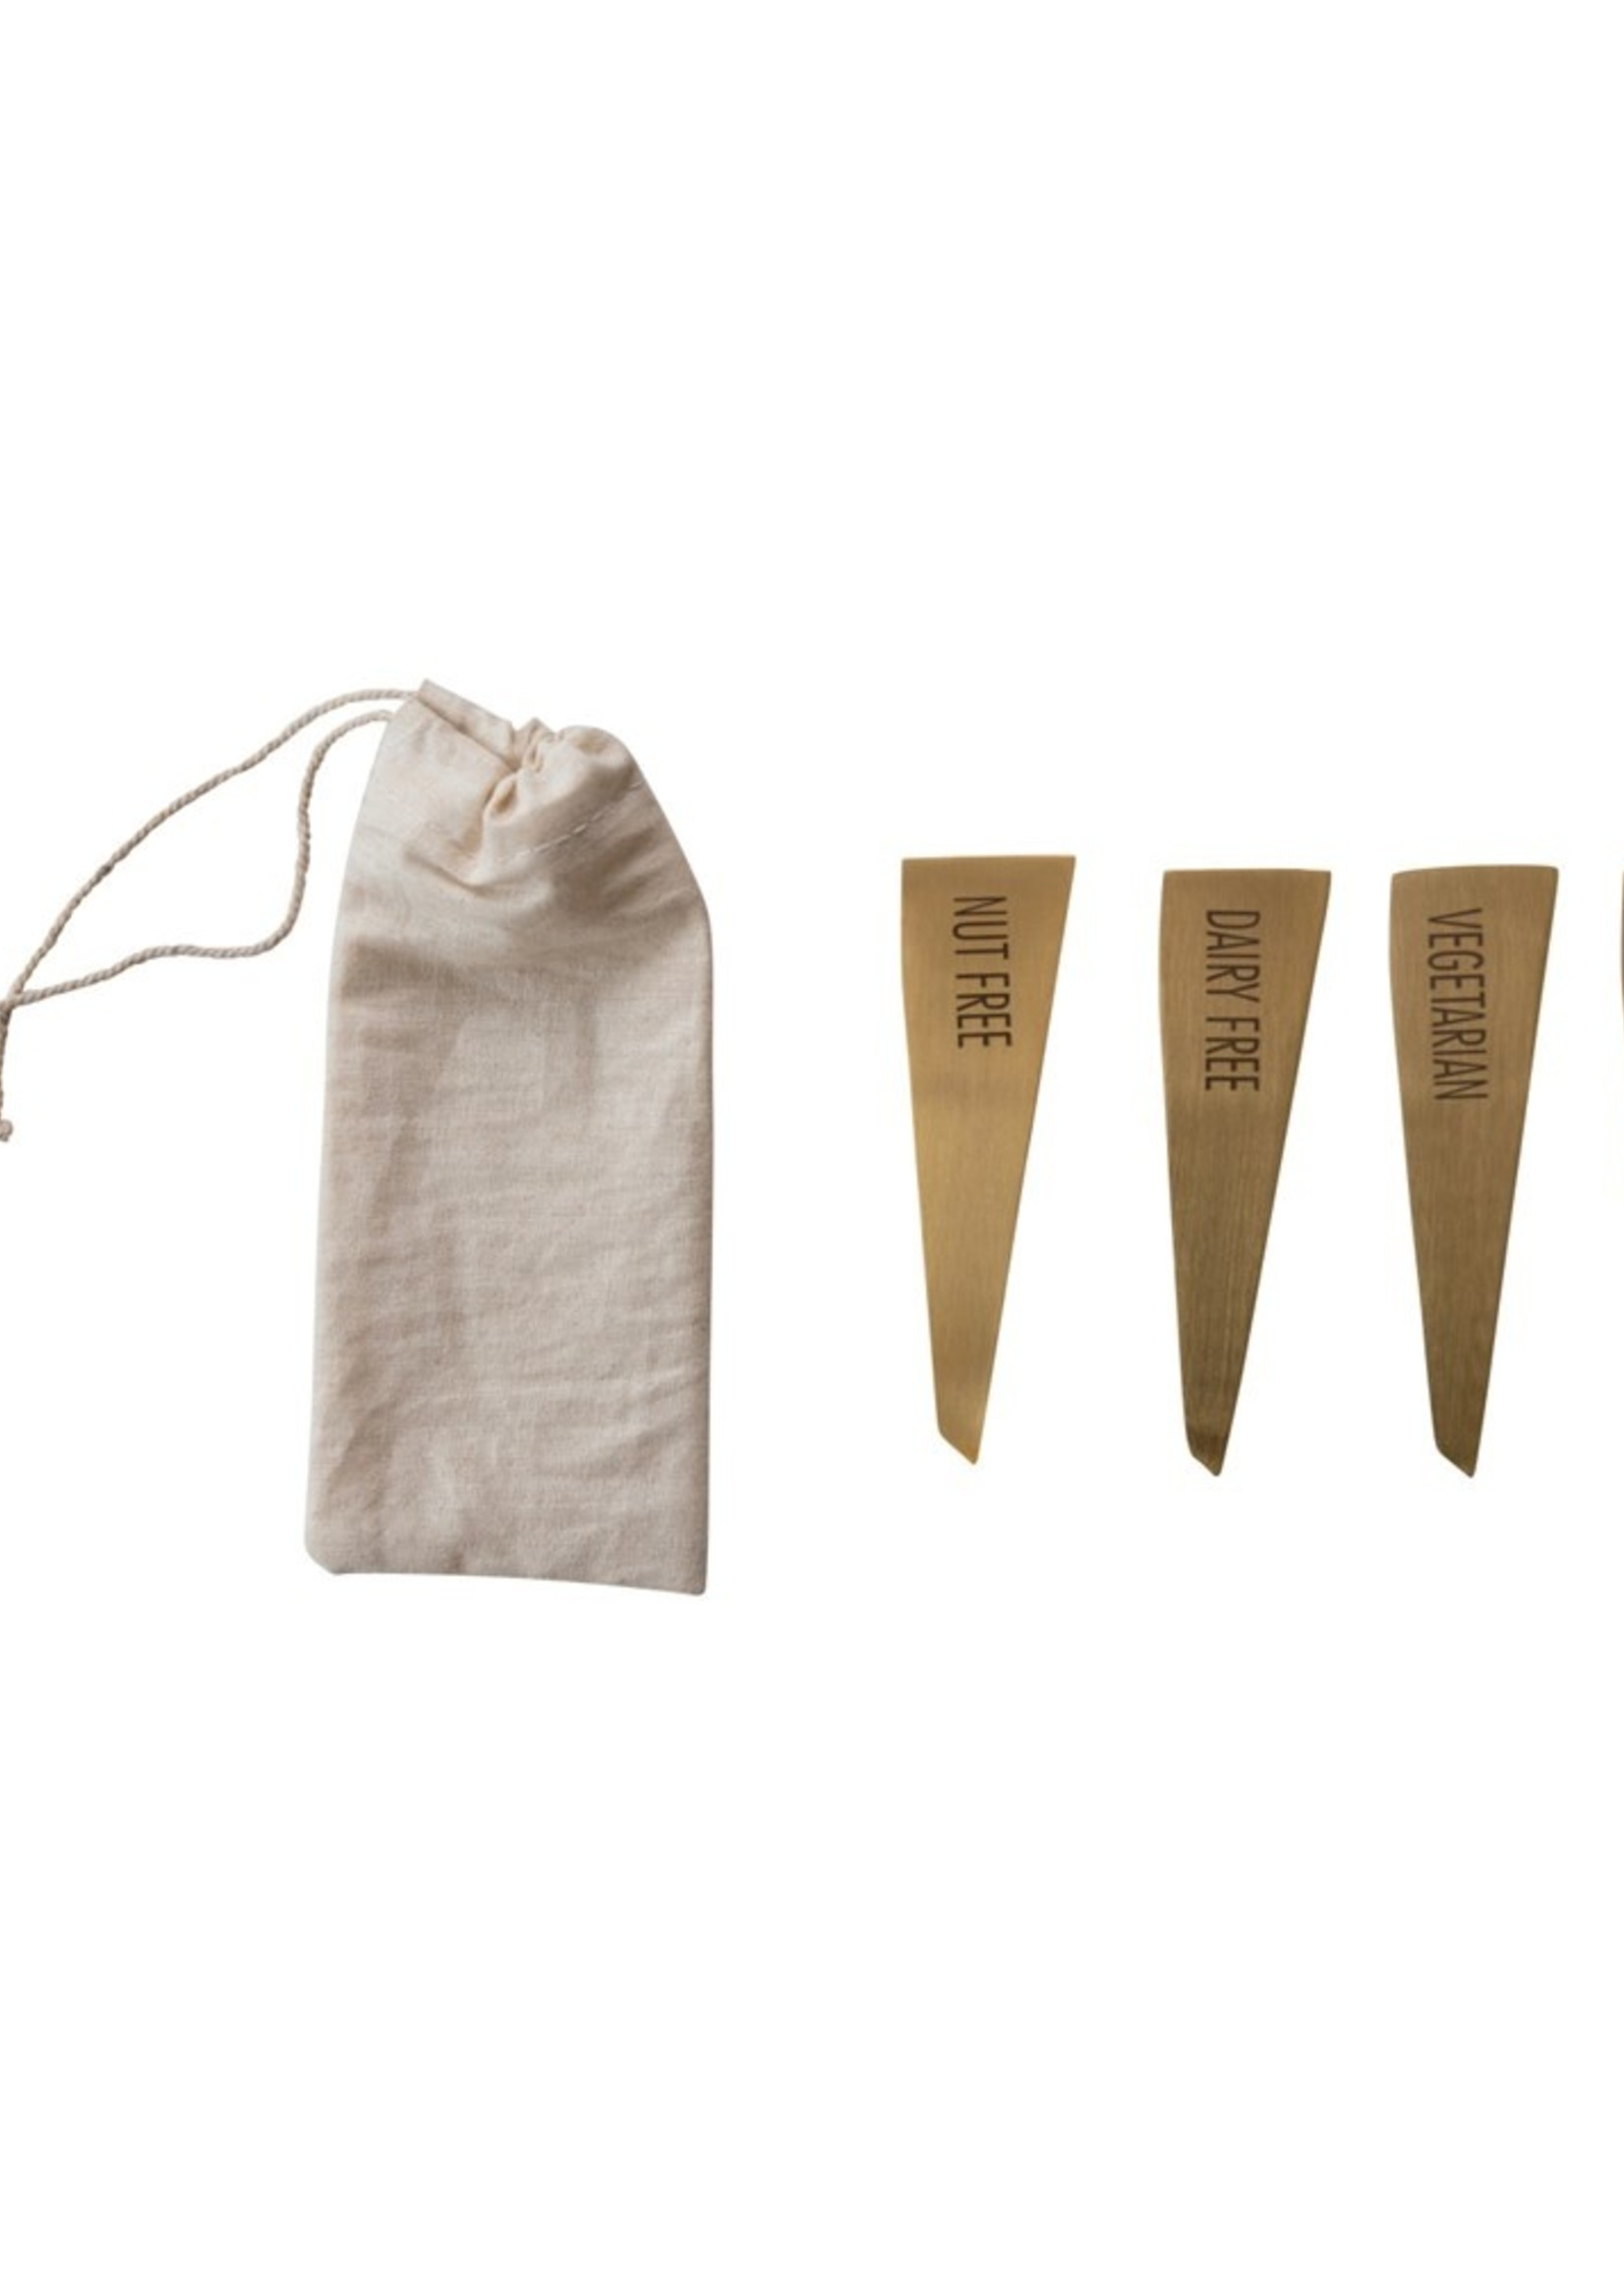 Stainless Steel Food Markers, Brass Finish, Set of 4 in Drawstring Bag